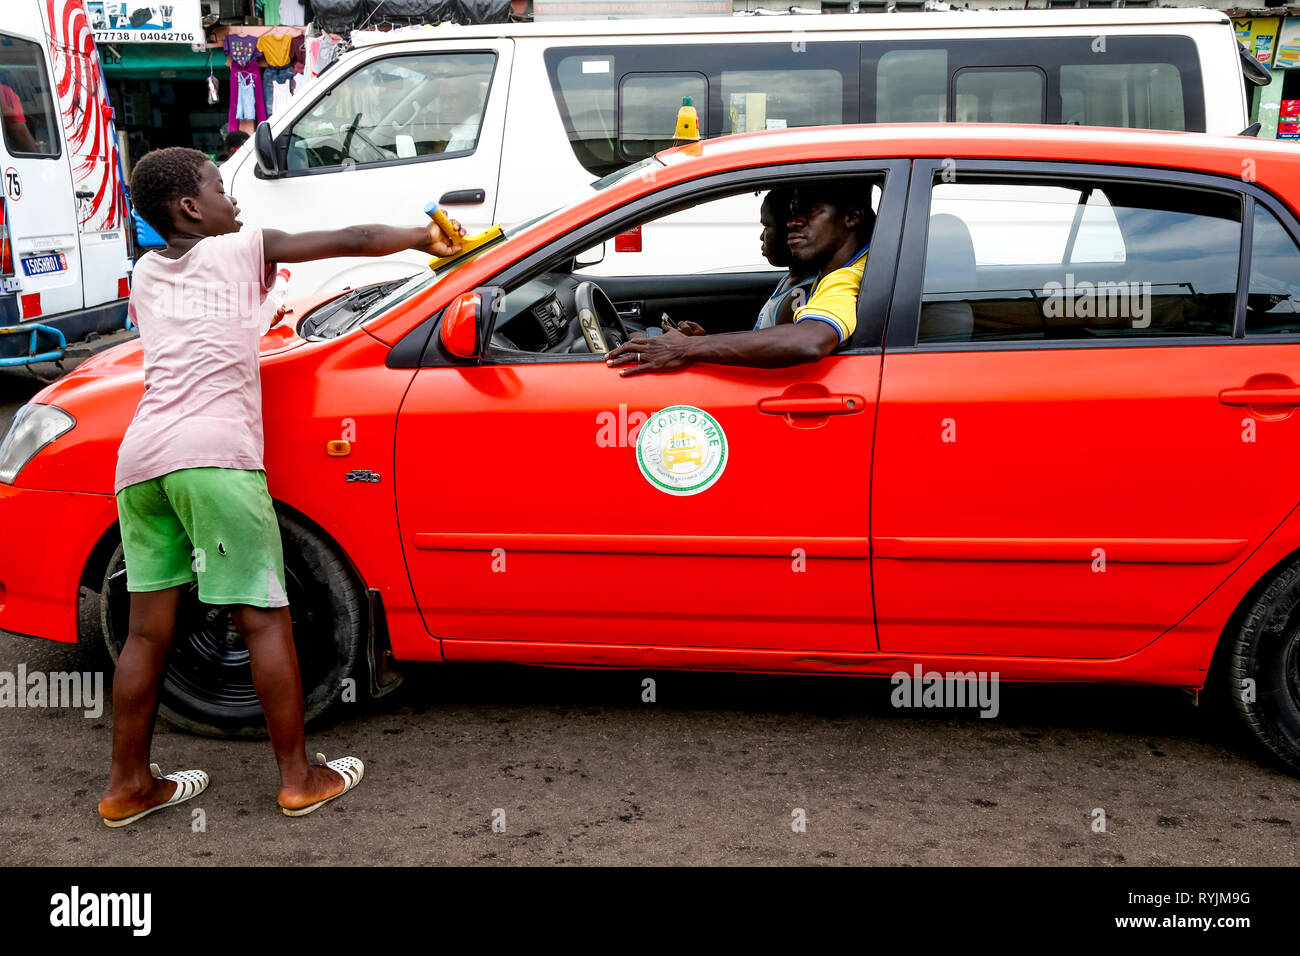 Boy cleaning a car windshield in the traffic in Yopougon, Abidjan, Ivory Coast. - Stock Image